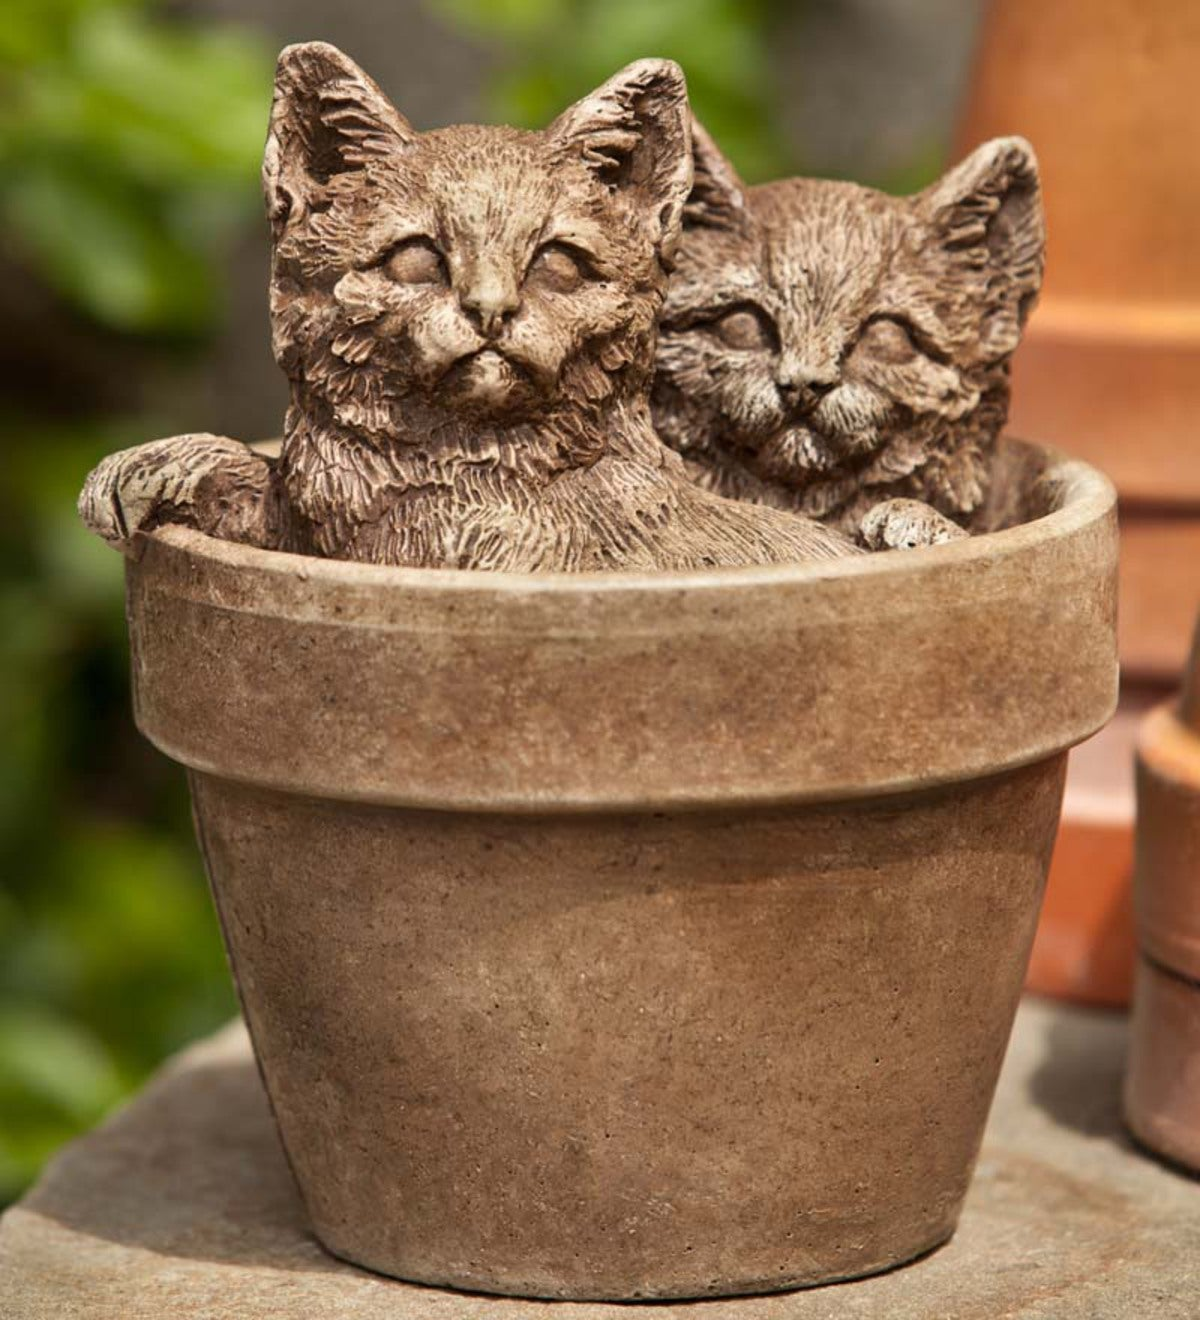 Cast Stone Kittens in Pot Statue | Garden Statues | Deck and Patio ...